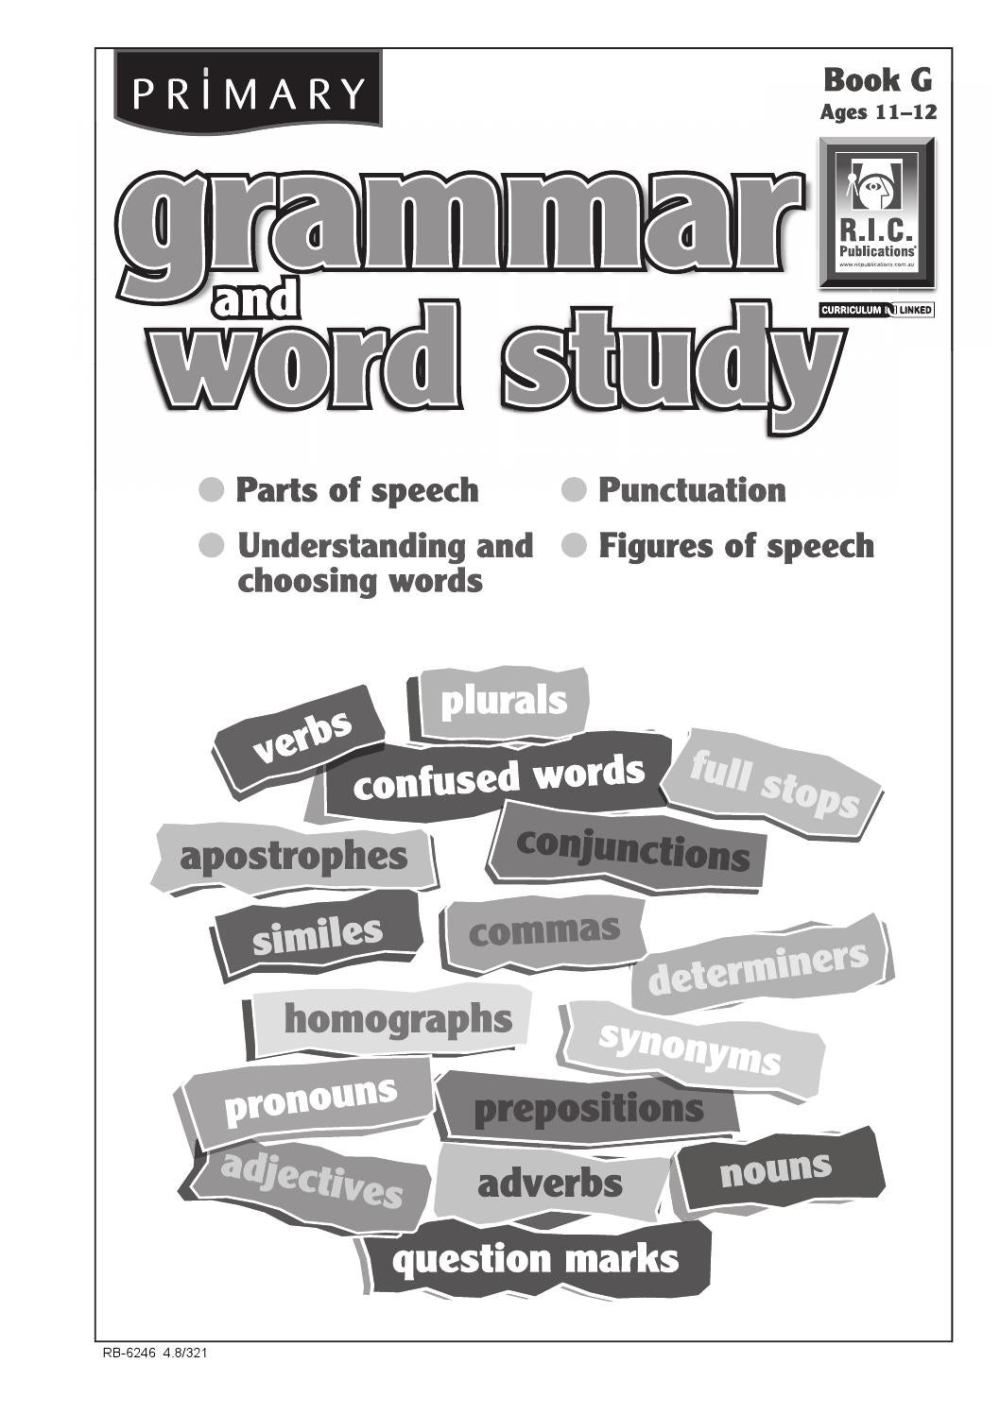 medium resolution of Primary Grammar and Word Study: Book G - Ages 11+ by Teacher Superstore -  issuu